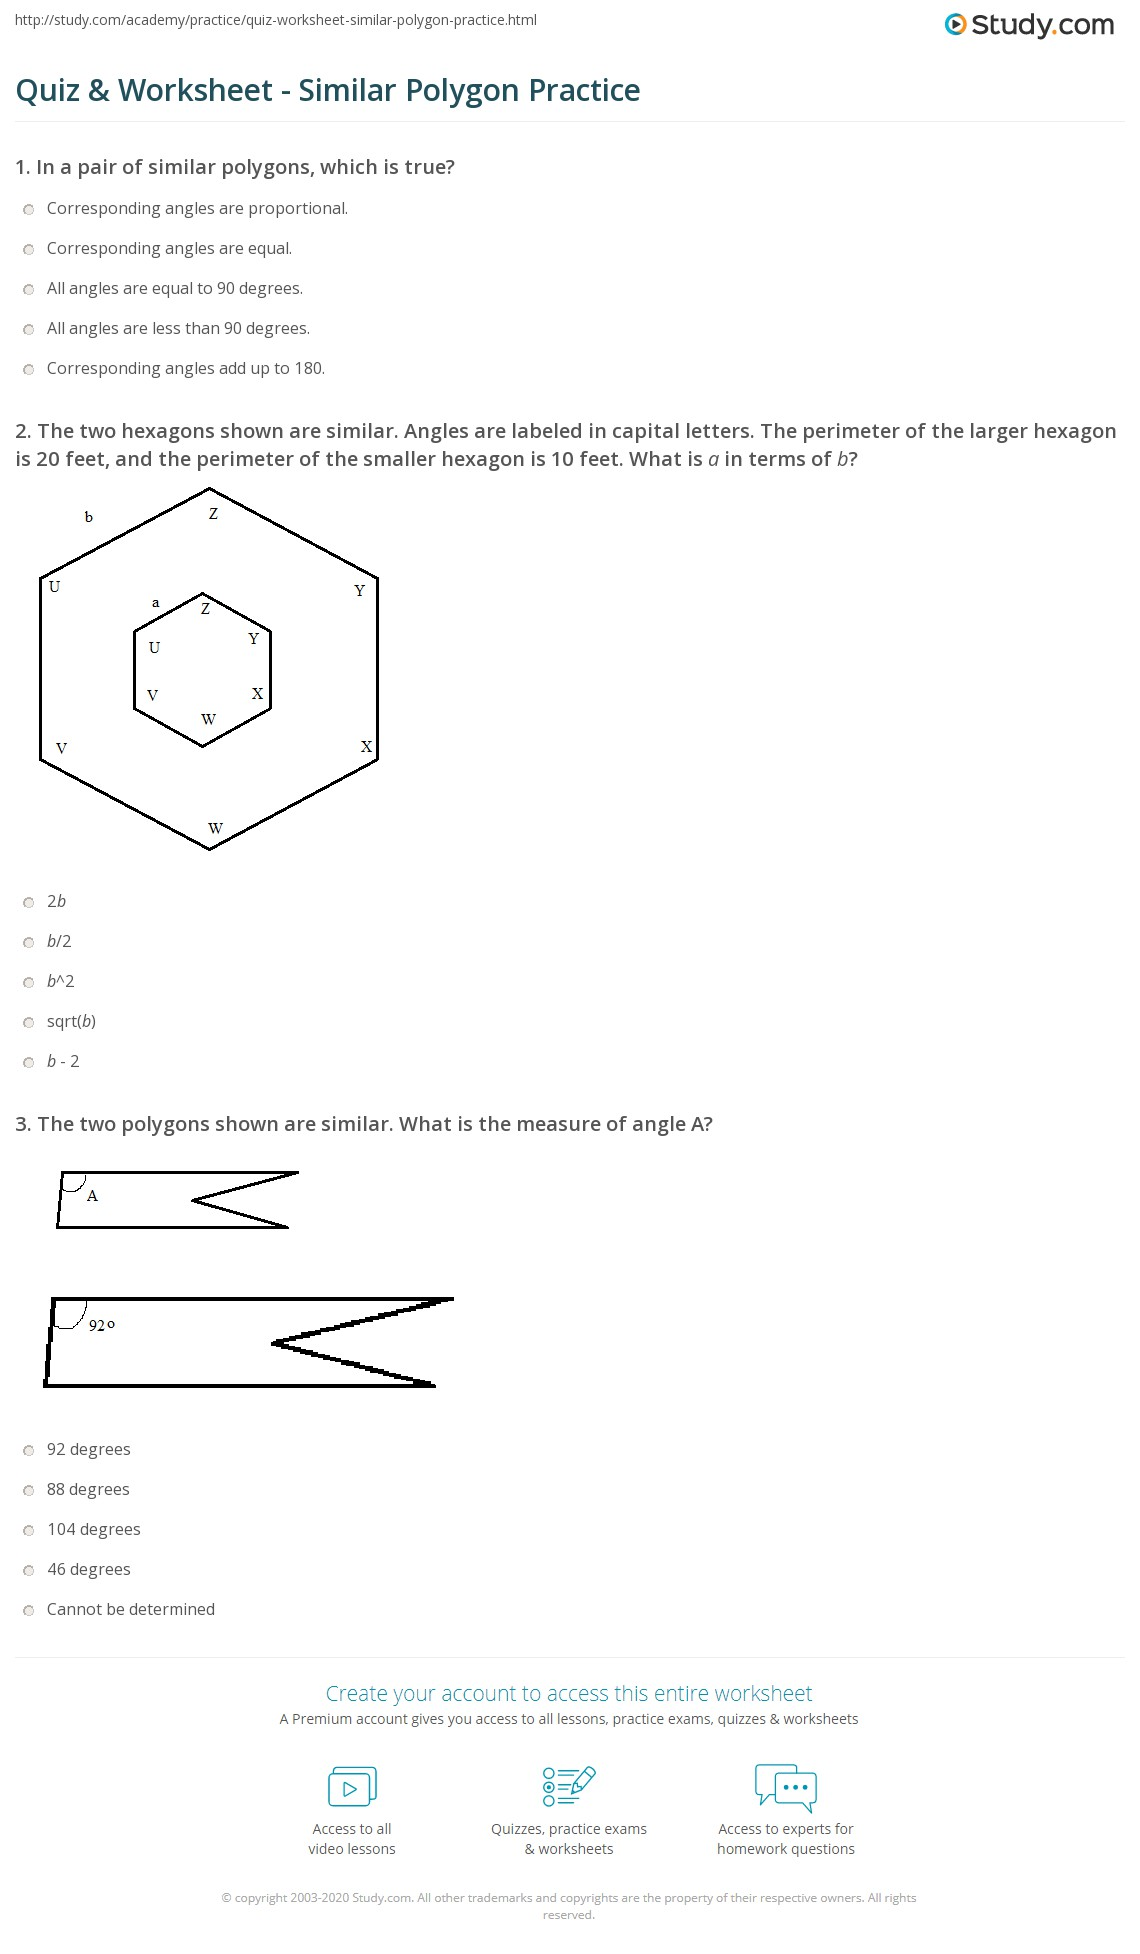 worksheet Polygon Worksheets quiz worksheet similar polygon practice study com 1 the two hexagons shown are angles labeled in capital letters perimeter of larger hexagon is 20 feet perimeter